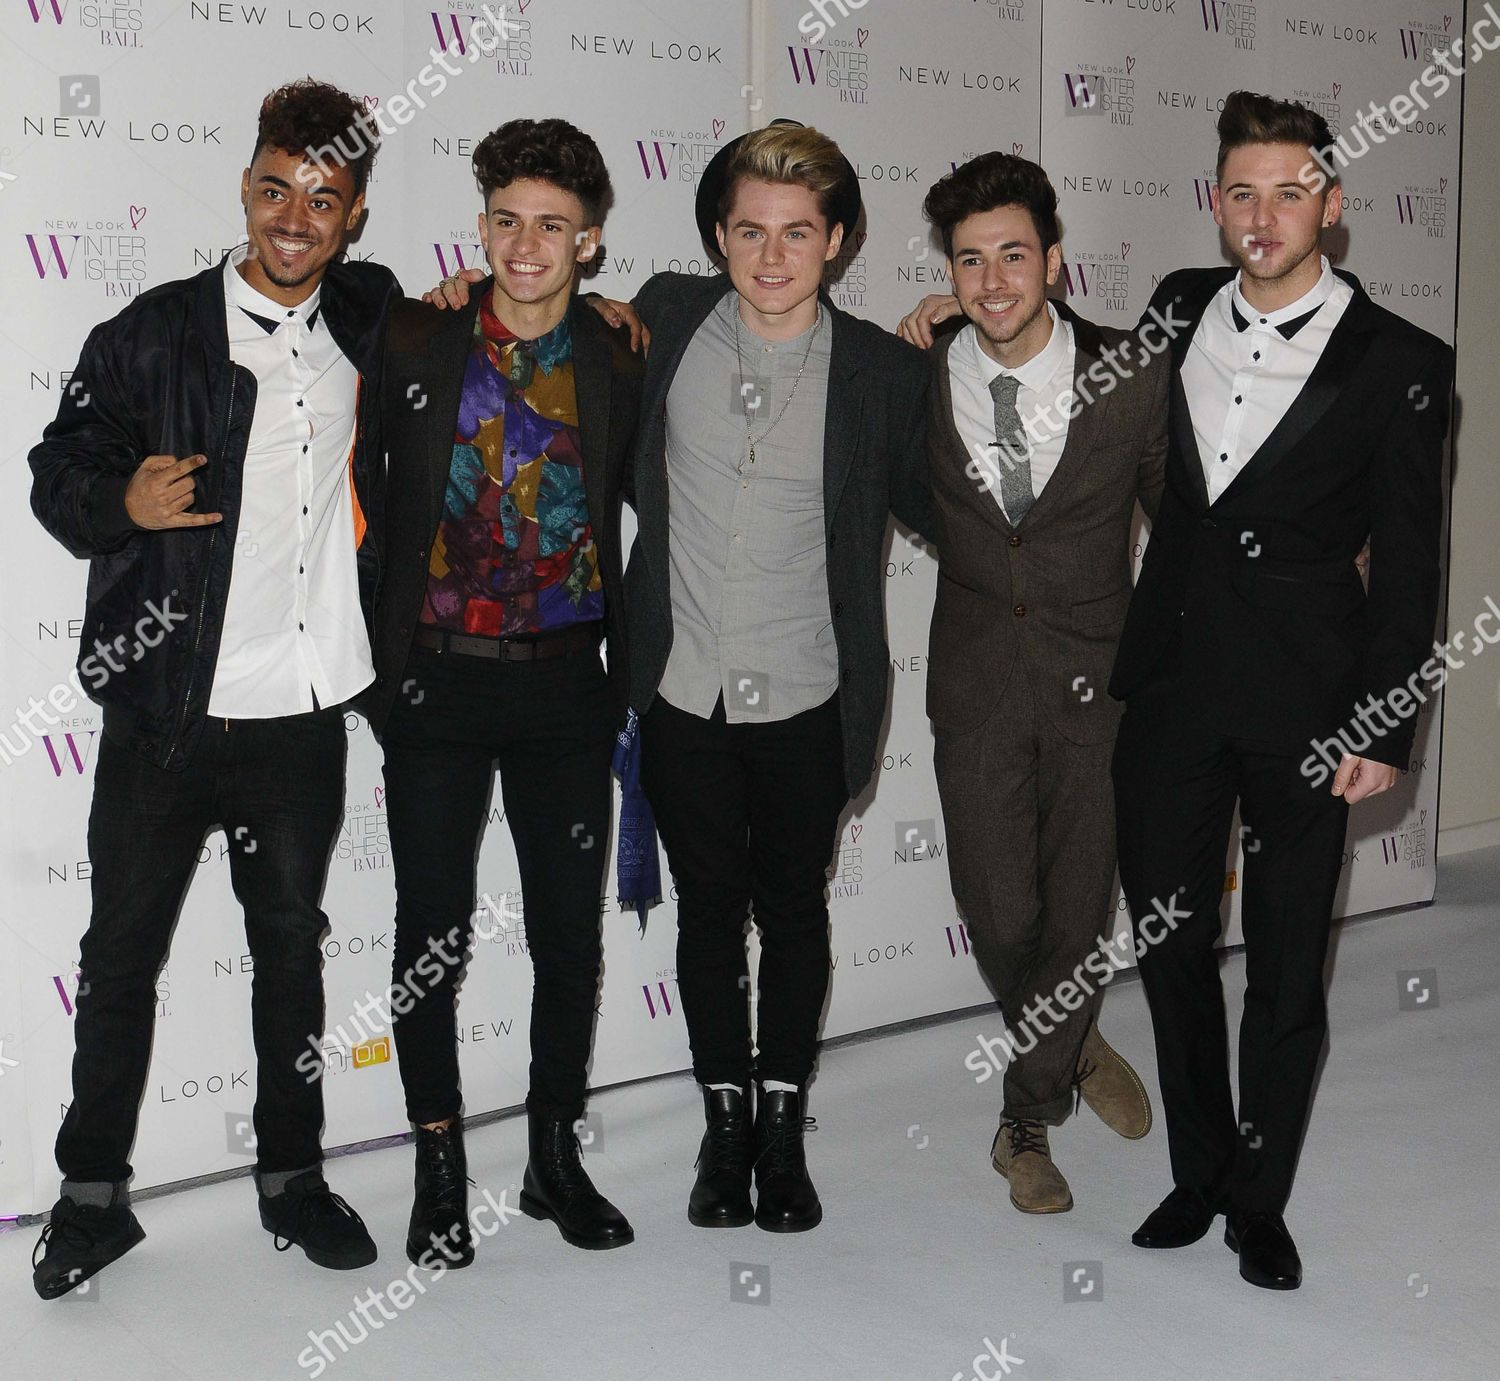 Stock photo of The New Look Winter Wishes Charity Ball, London, Britain - 06 Nov 2013